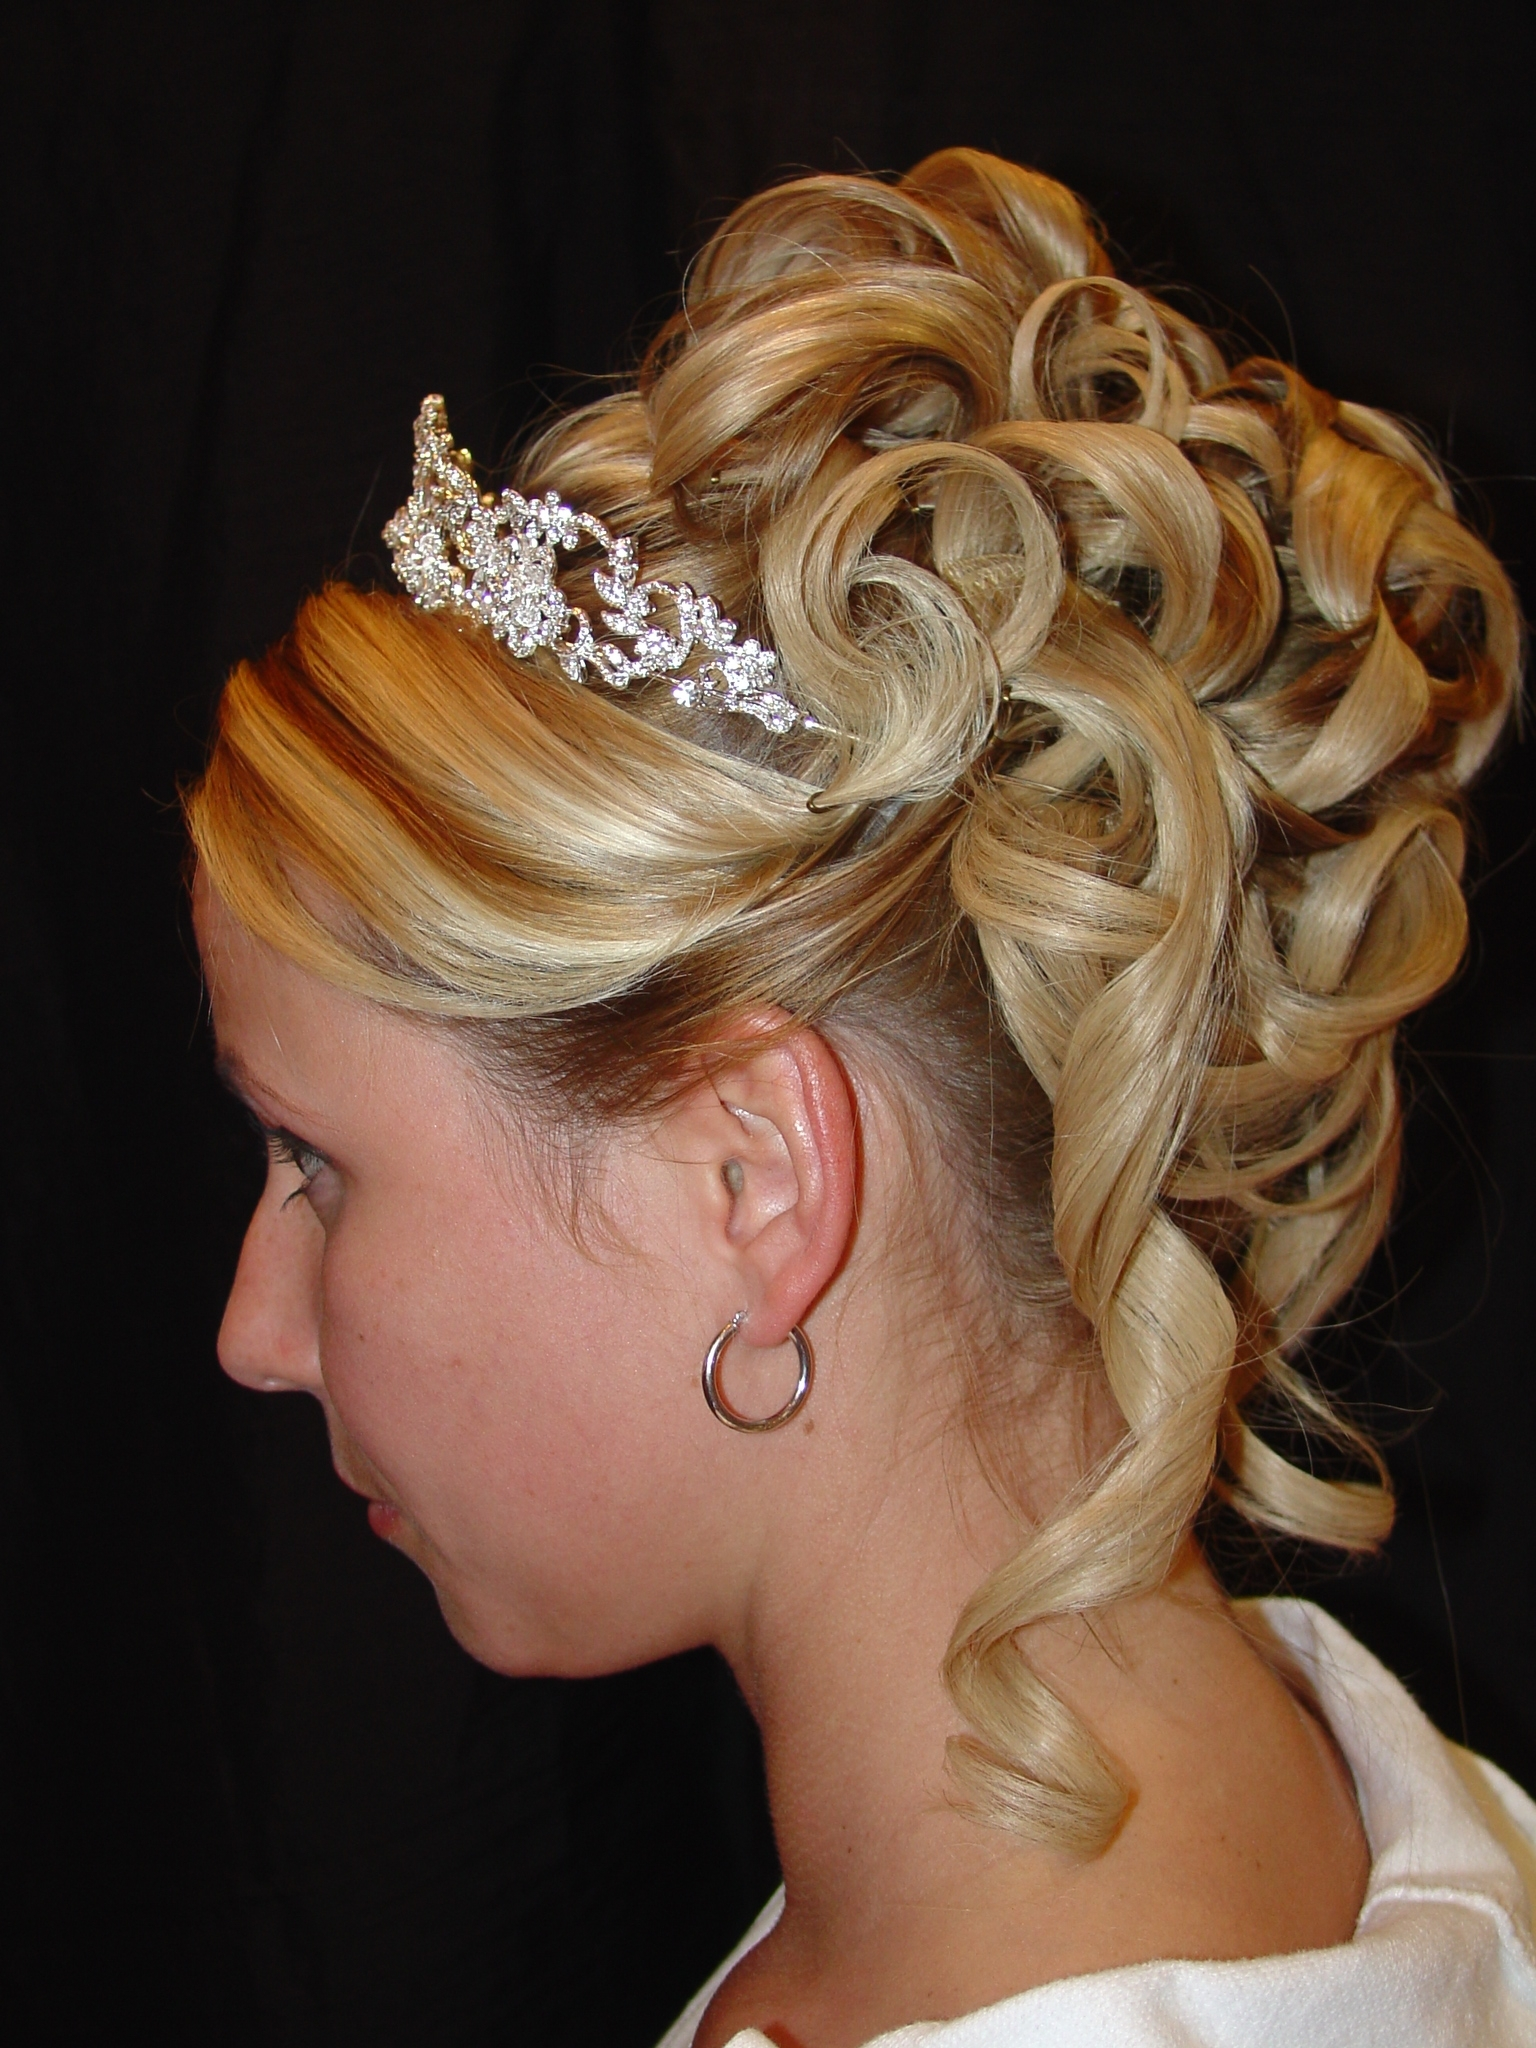 Fashionable Classic Wedding Hairstyles For Medium Length Hair With Regard To Classic Updos For Medium Hair – Hairstyle For Women & Man (View 14 of 15)